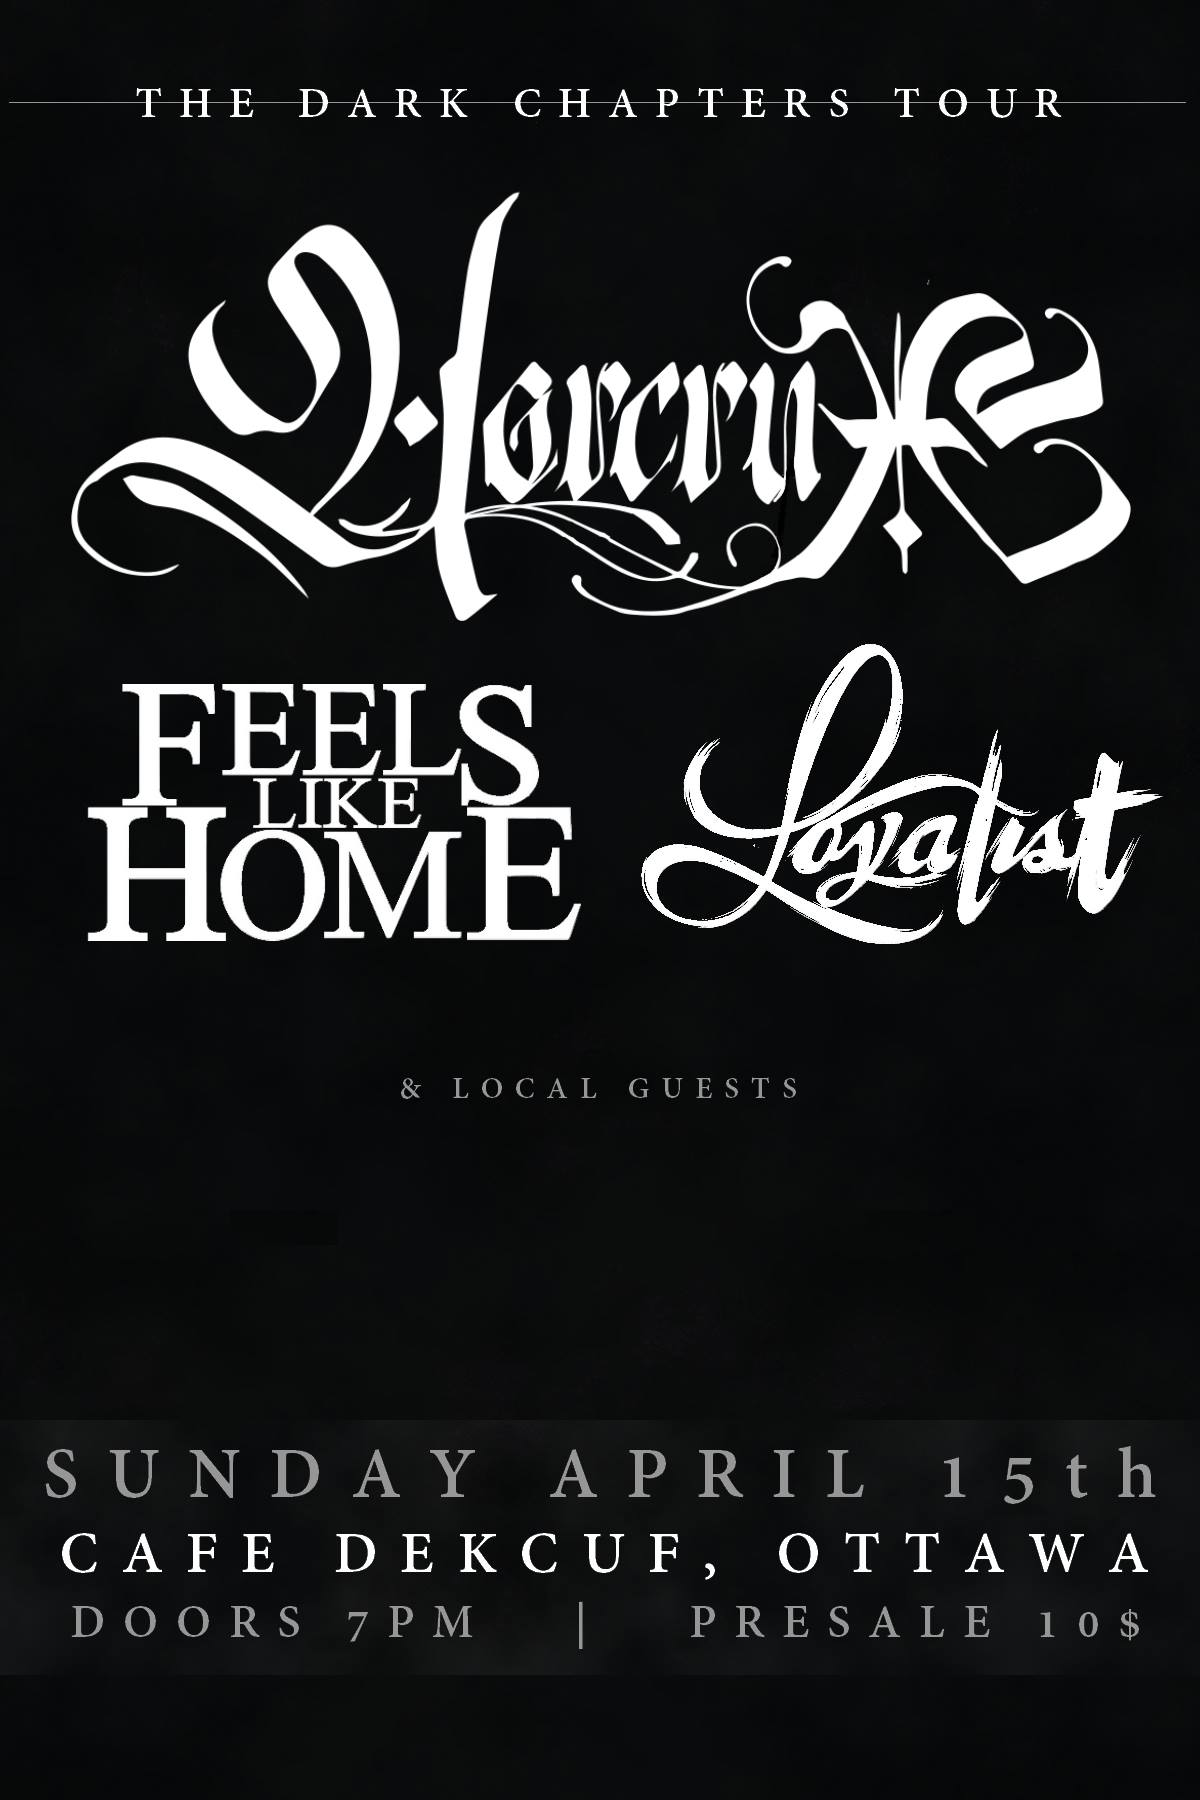 Horcrux, Feels Like Home, Loyalist & More @ Dekcuf 04/15